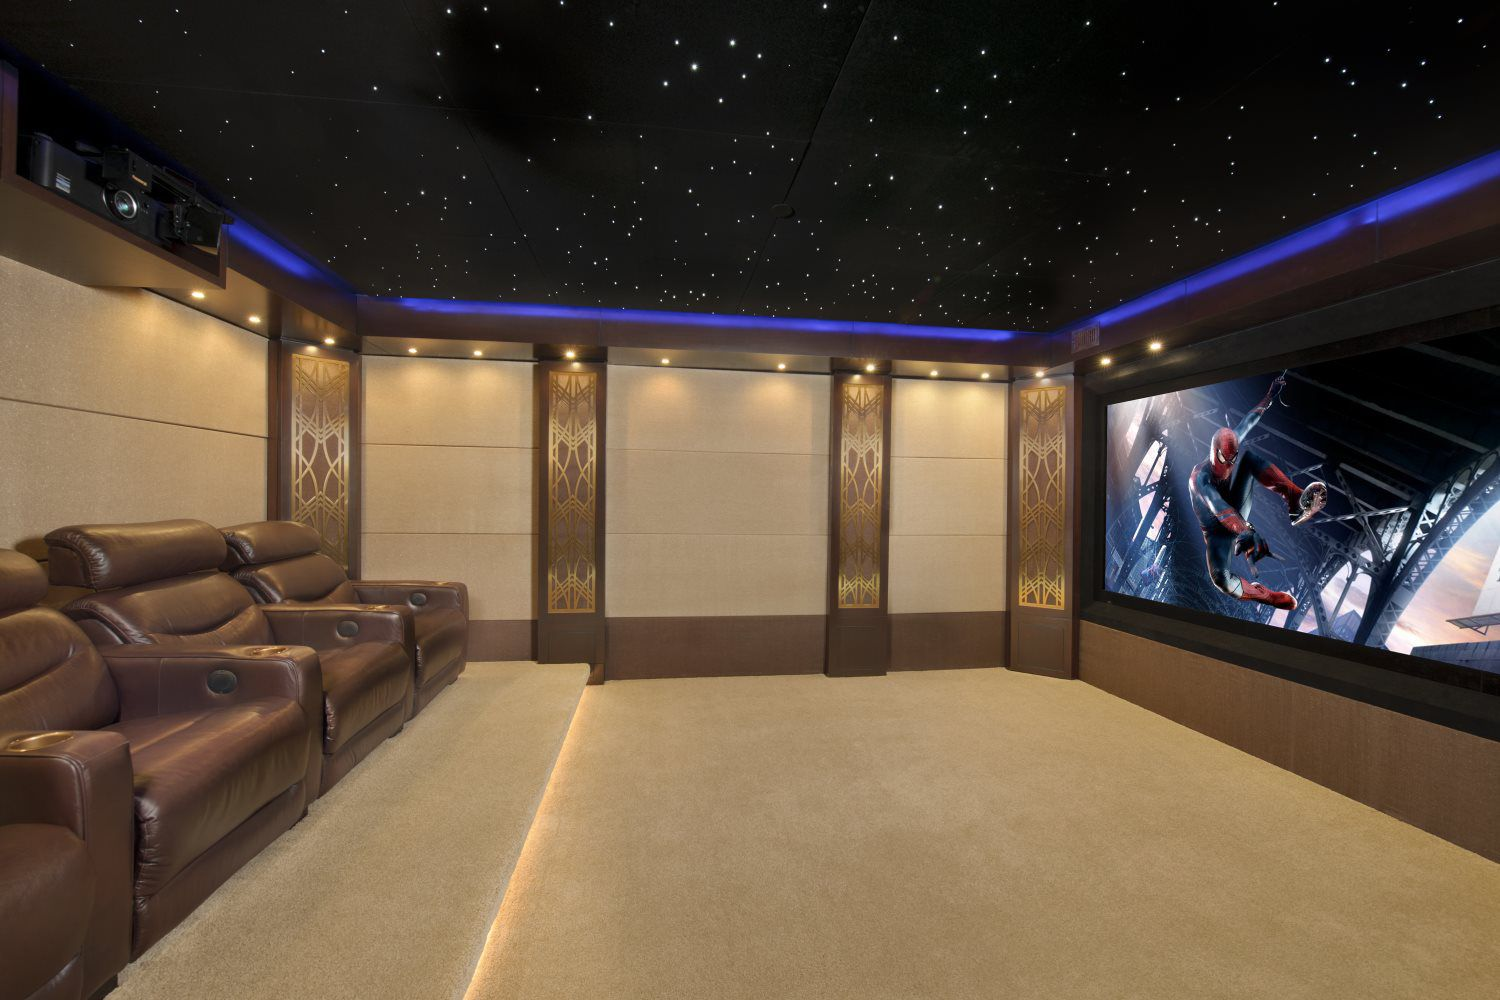 Home Theater Gallery - Caveman Home Theaters on home furniture gallery, lighting design gallery, graphic design gallery, infinity pool design gallery, entryway design gallery, art design gallery, small home theater gallery, home builders gallery, best home theater gallery, home interior design gallery, home theatre designs, carpet design gallery, construction design gallery, flooring design gallery, closet design gallery, home photography gallery, office design gallery, interior designer gallery, apartment building design gallery, luxury home design gallery,